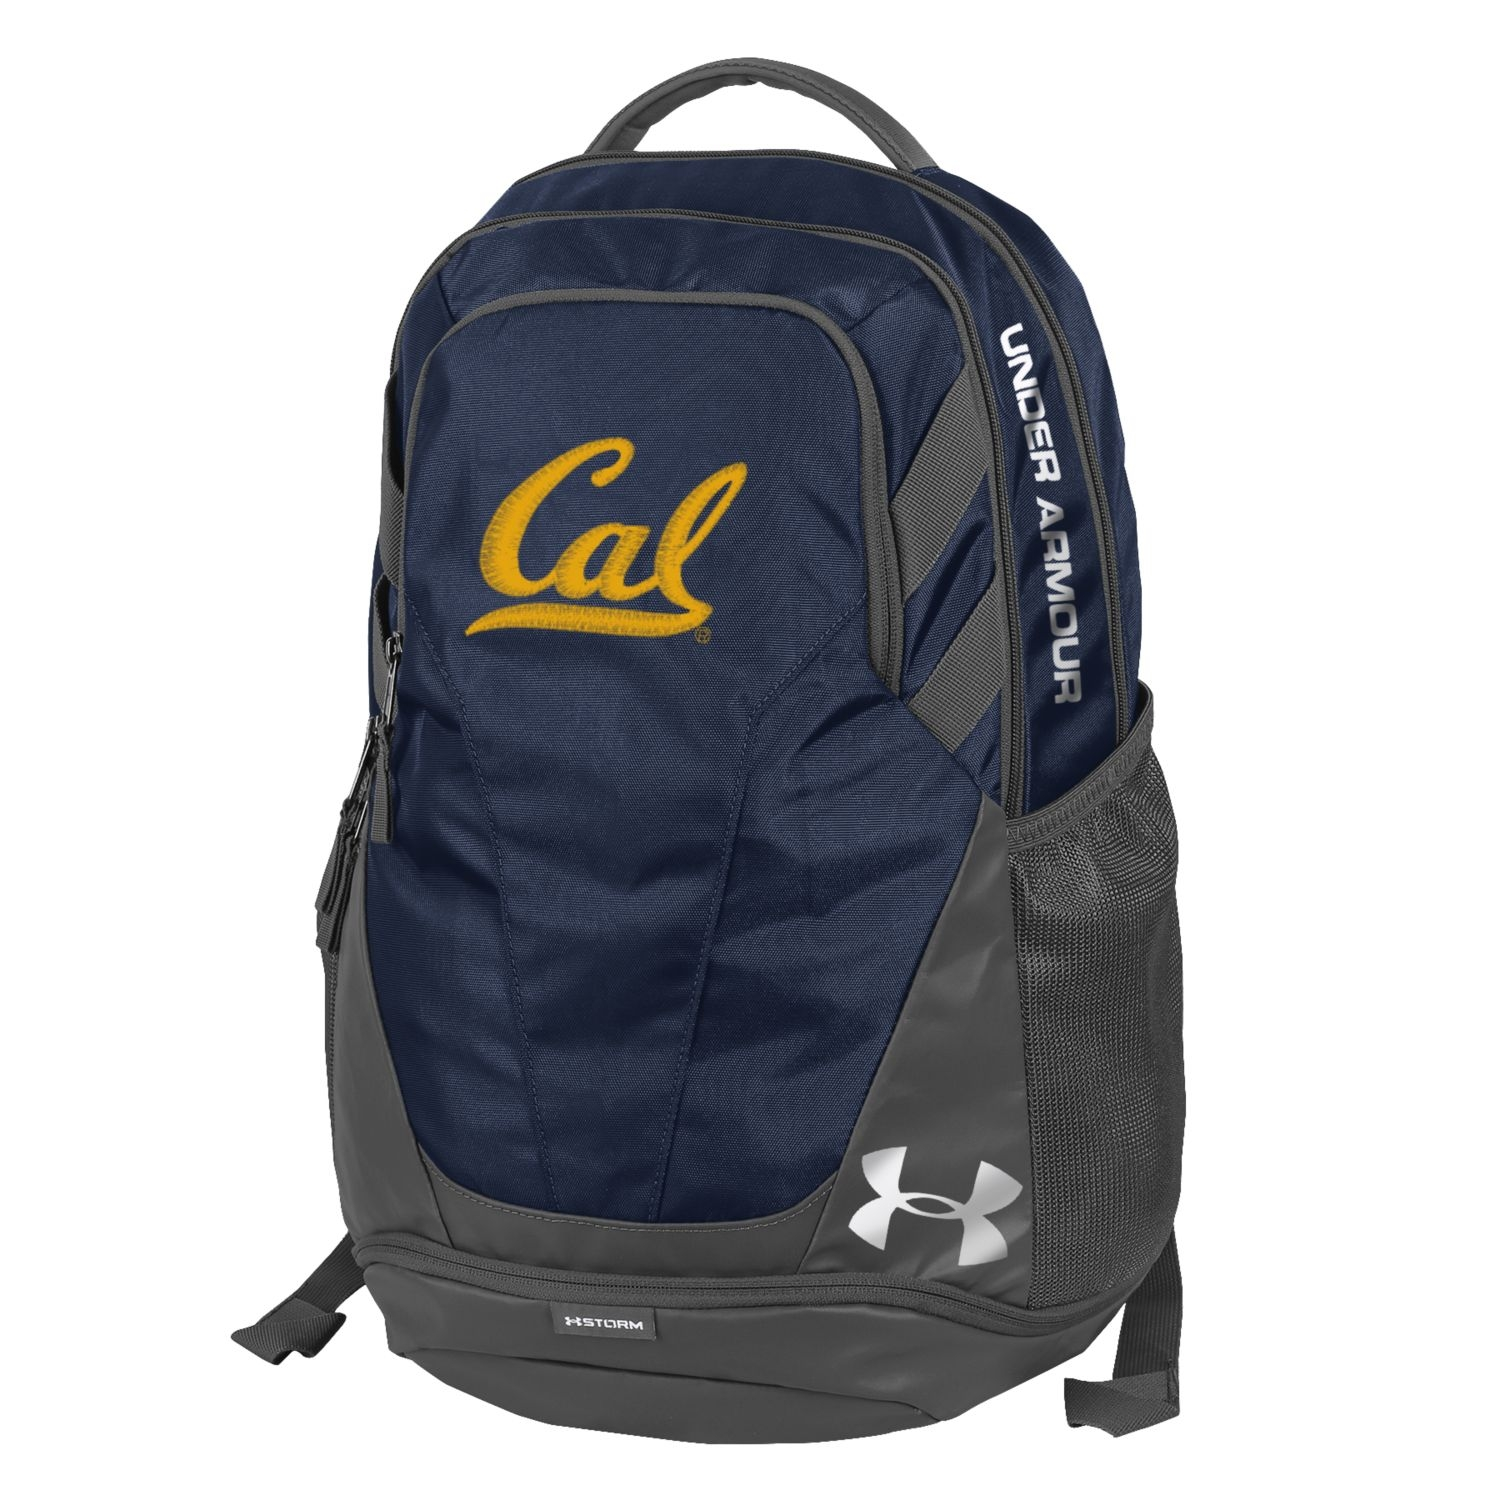 University of California Under Armour Hustle III Backpack